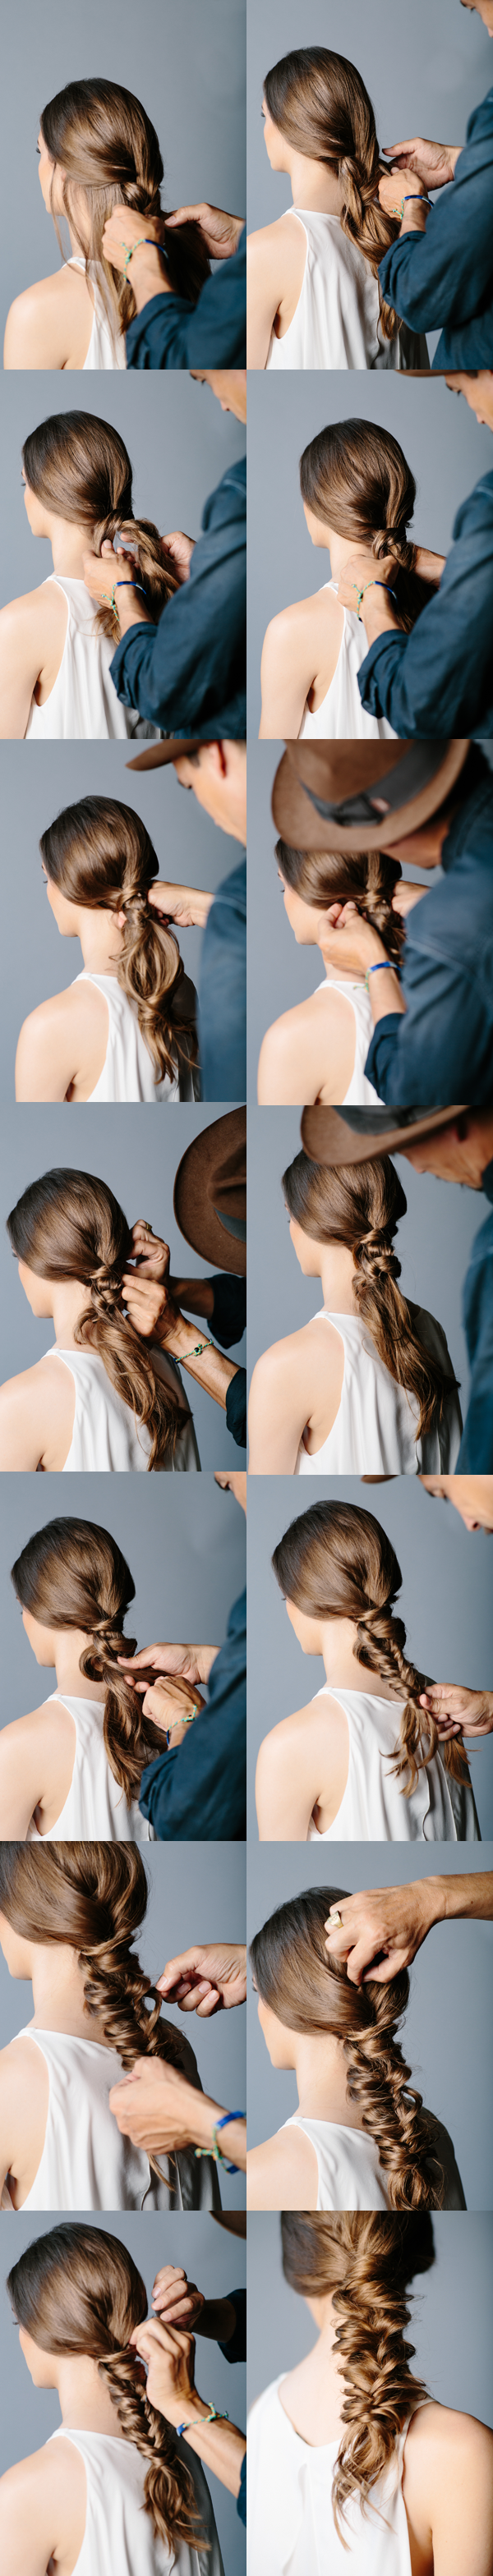 Beautiful tutorial for braided hairstyles